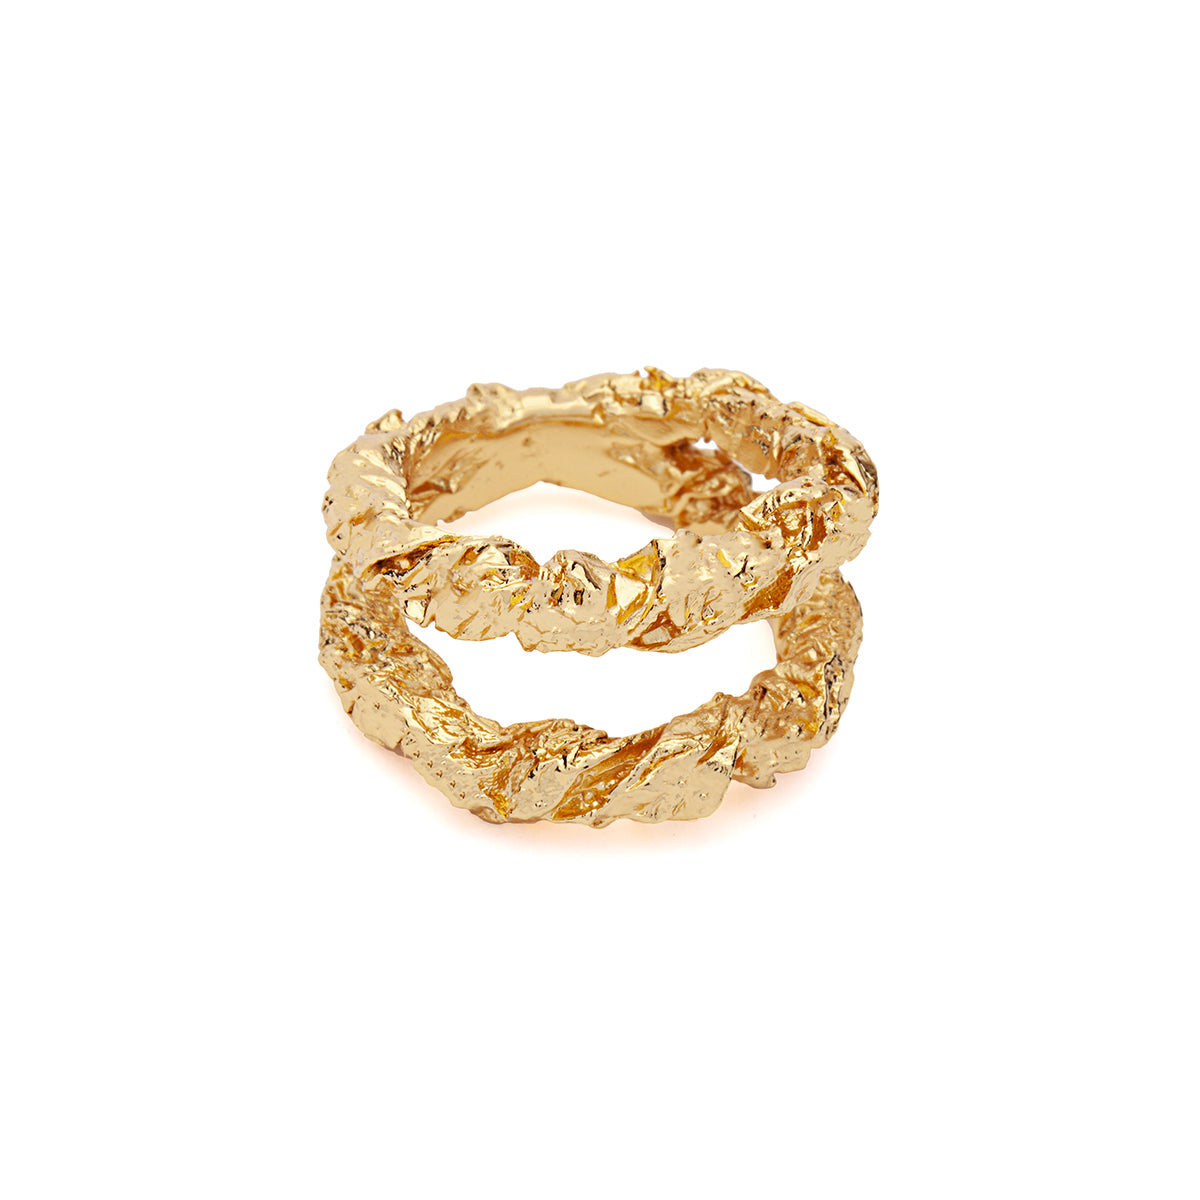 Amber Sceats Monroe Ring in Gold